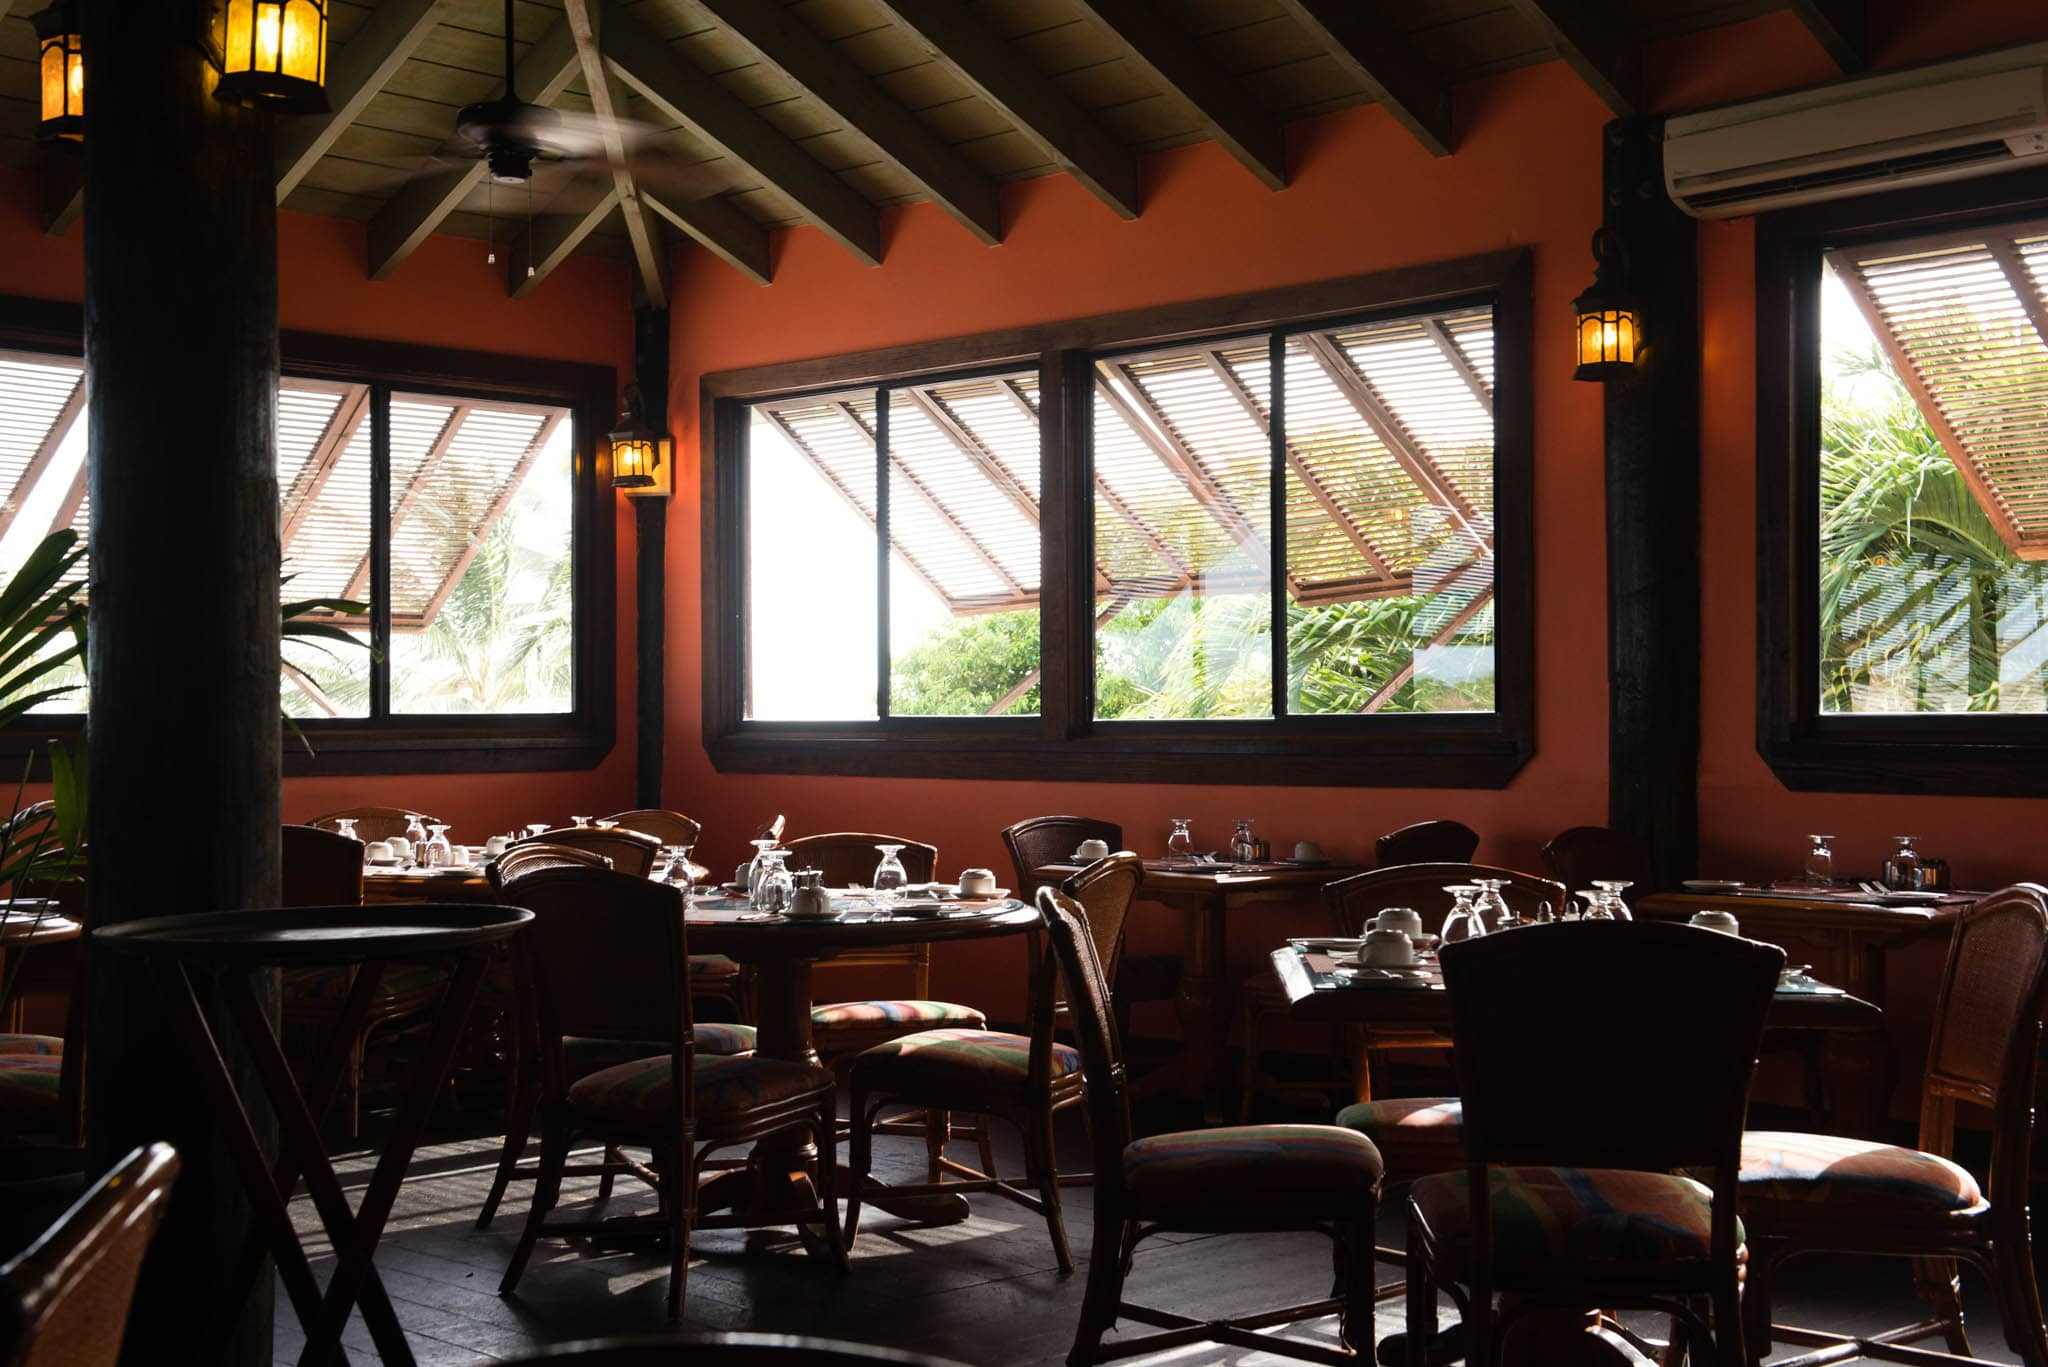 The Seabreeze Restaurant is just one of the several dining options on property.